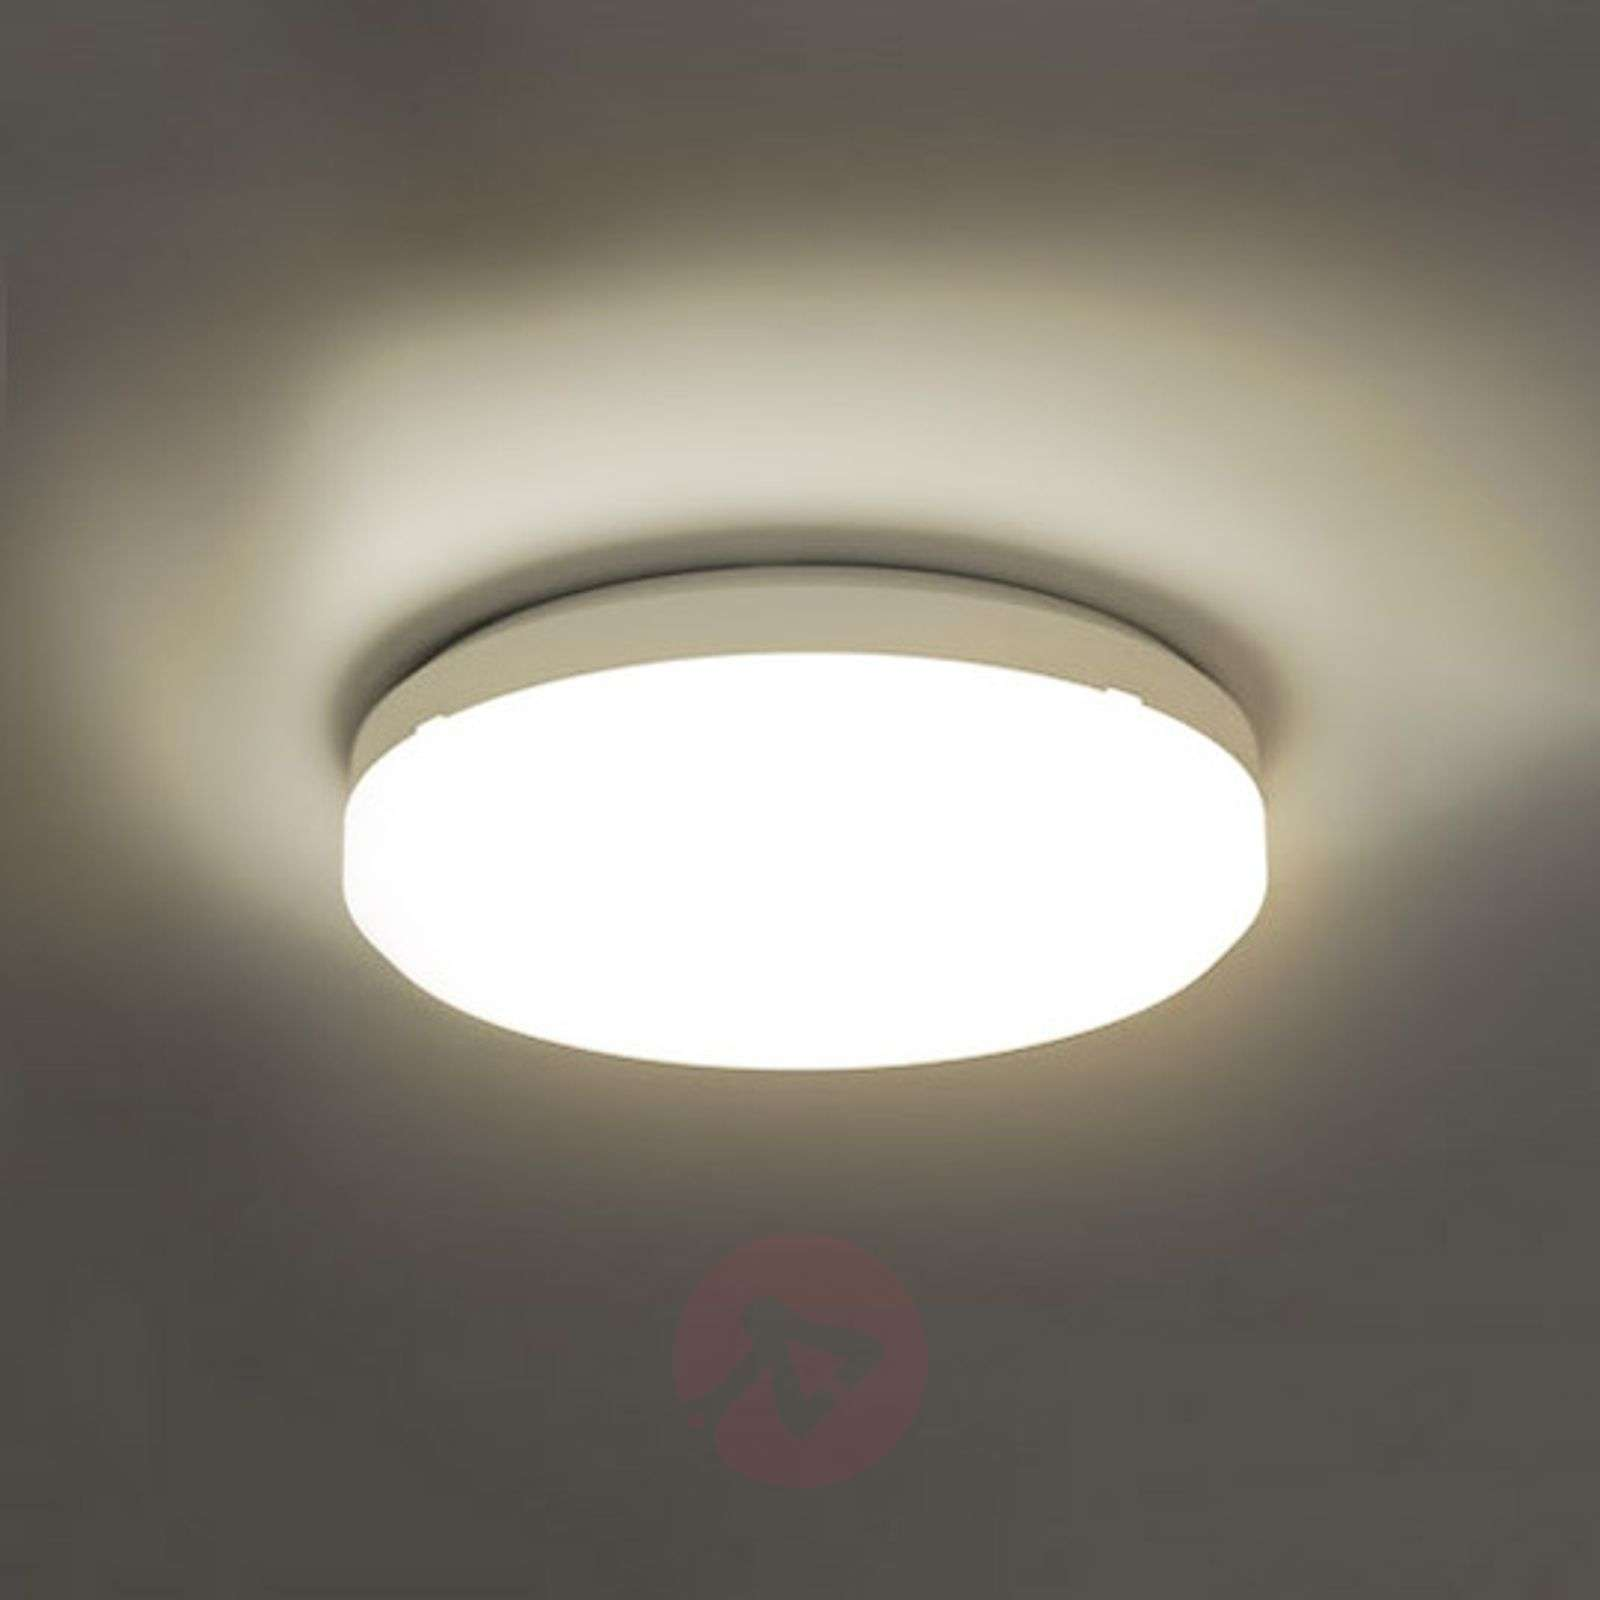 Sun 15 LED ceiling light, IP65-1018311X-02